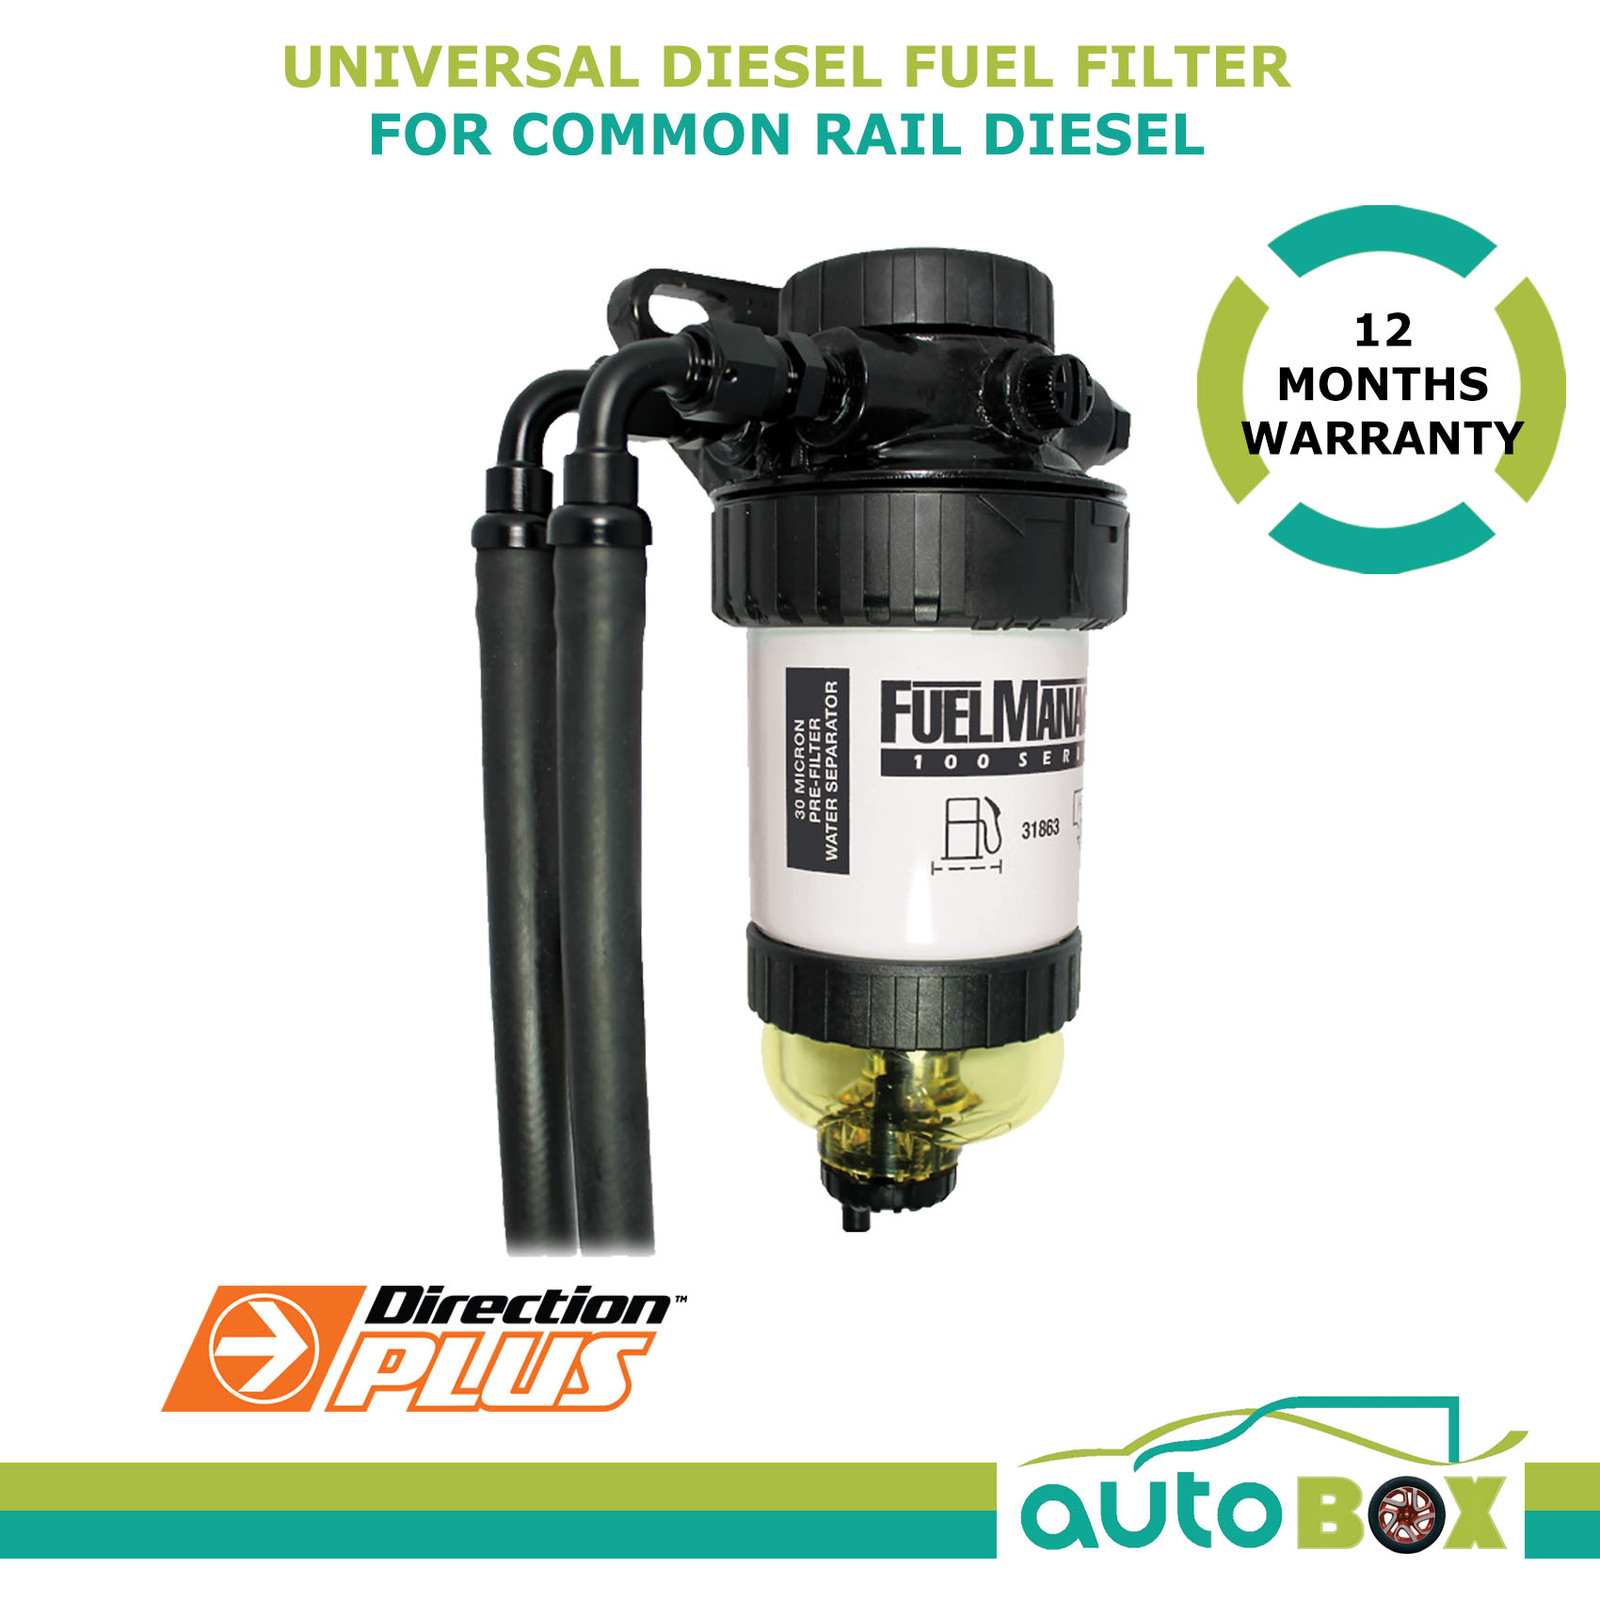 heavy duty fuel filter for see thru wiring diagram Donaldson Engine Air Filter heavy duty fuel filter for see thru schematic diagramheavy duty fuel filter for see thru wiring